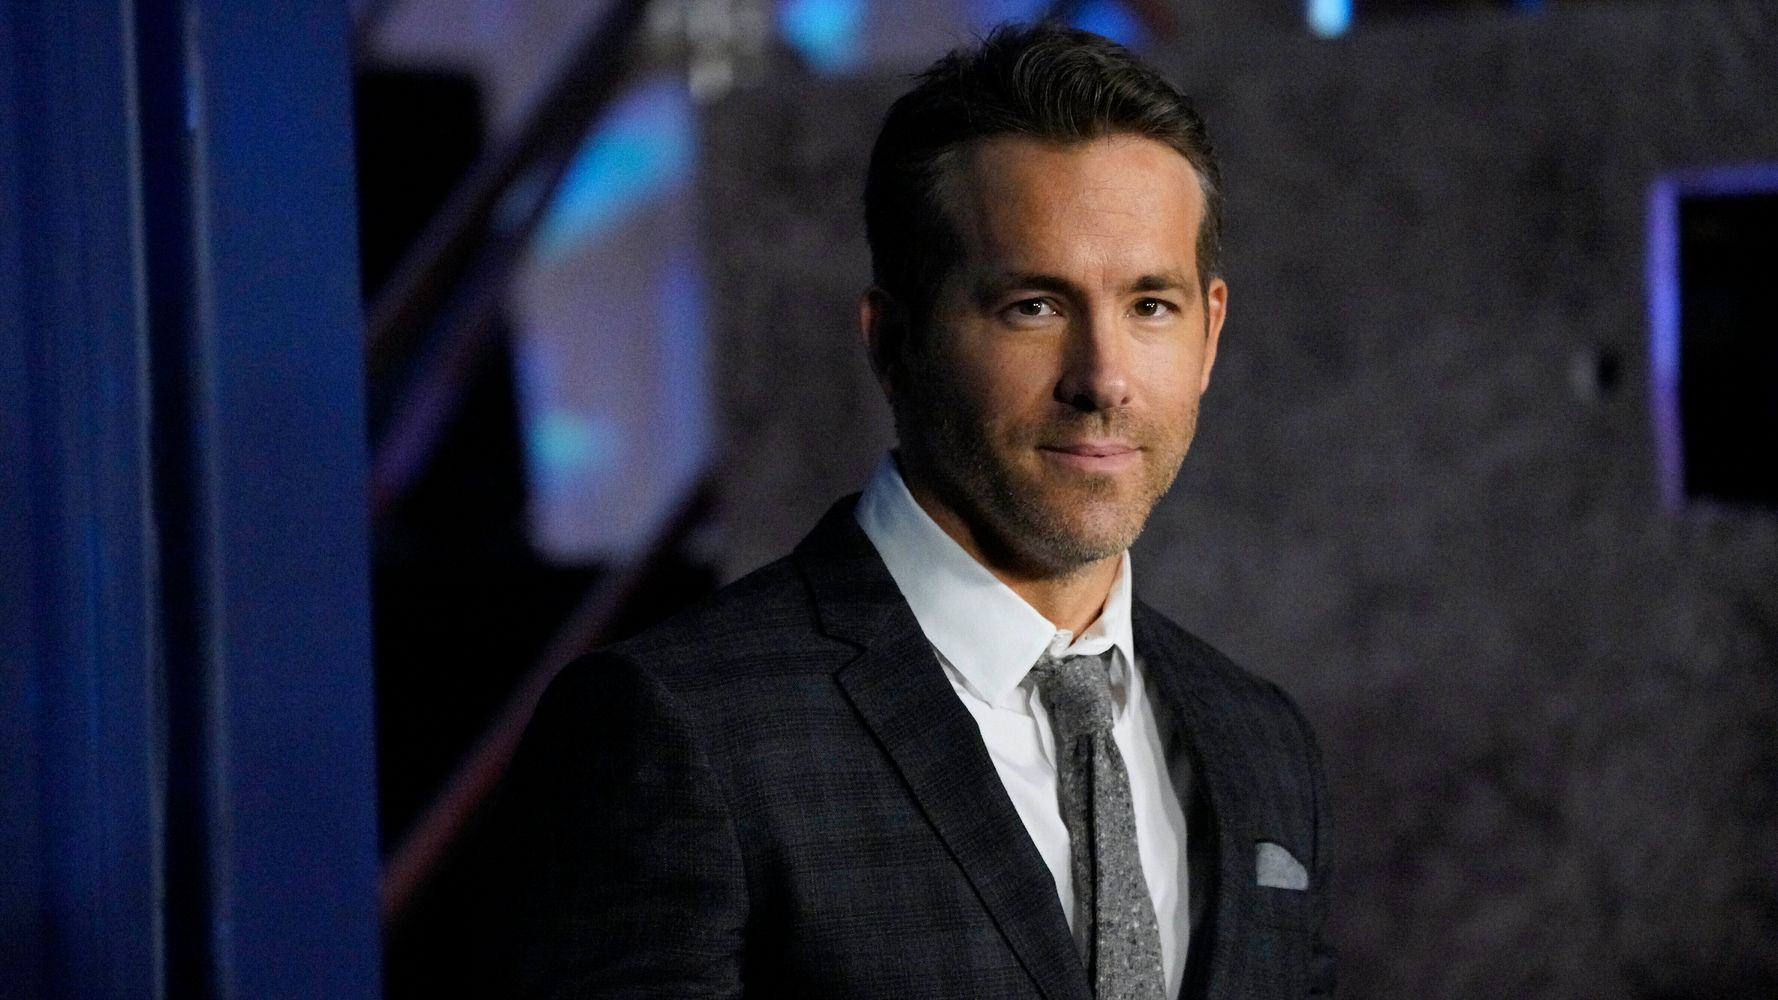 Ryan Reynolds Is Pledging Salary To 'Group Effort Initiative' To Tackle Hollywood's Diversity Issues